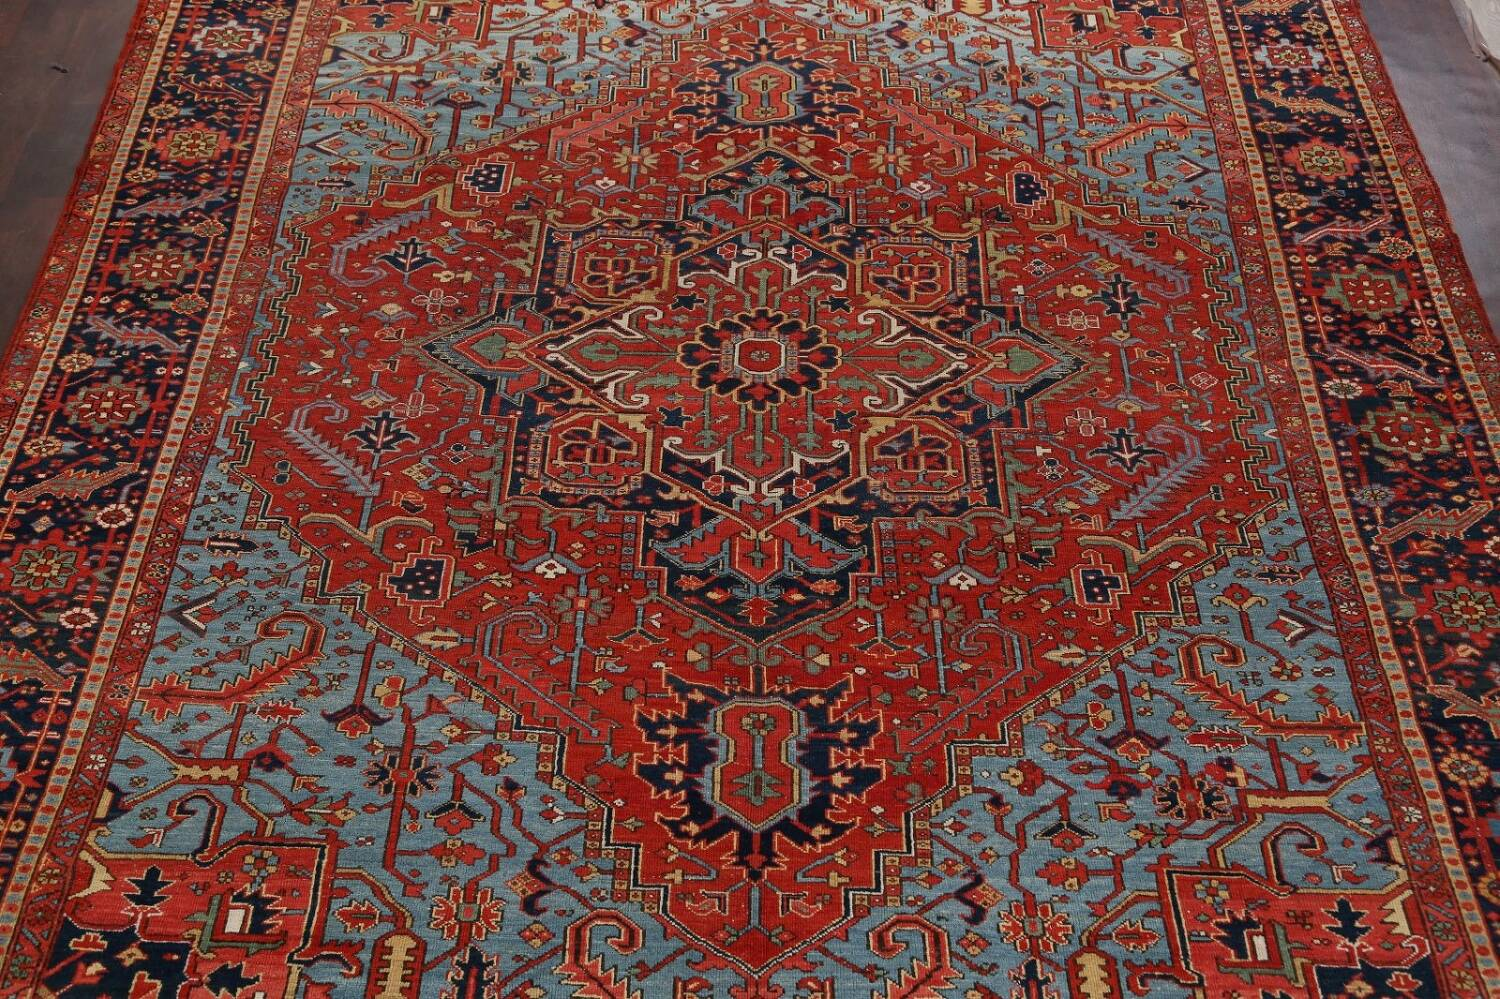 Pre-1900 Antique Vegetable Dye Heriz Serapi Persian Rug 12x14 image 3